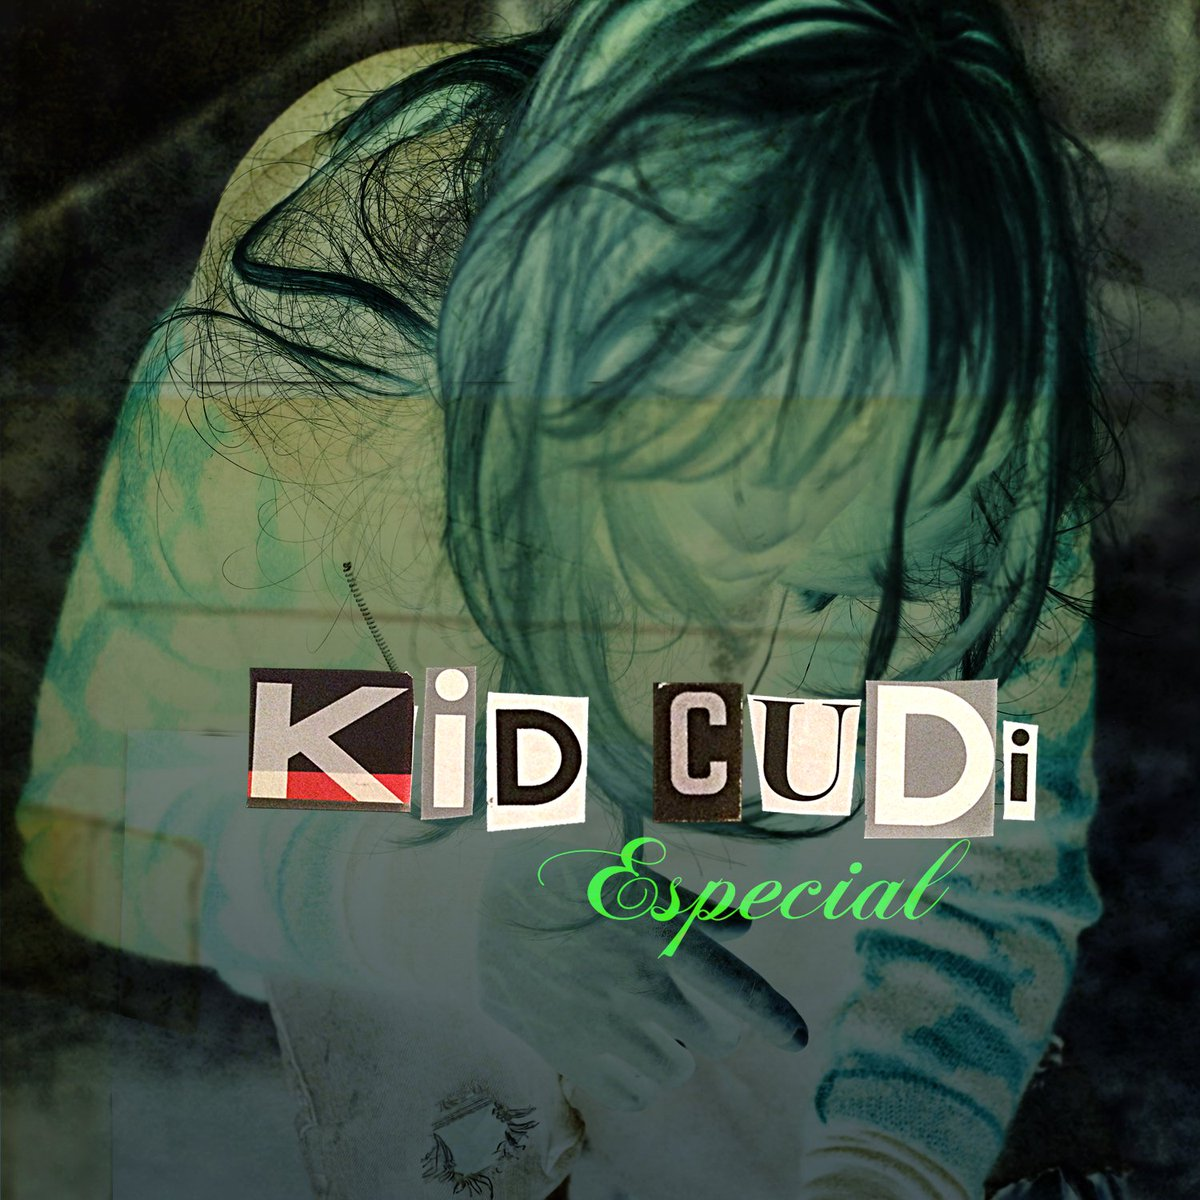 JUST ANNC'D: @KidCudi will play @Terminal5NYC on Feb 10 - limited # of tix available NOW! https://t.co/wlCIm3XJ8j https://t.co/WyyQvNAbHH